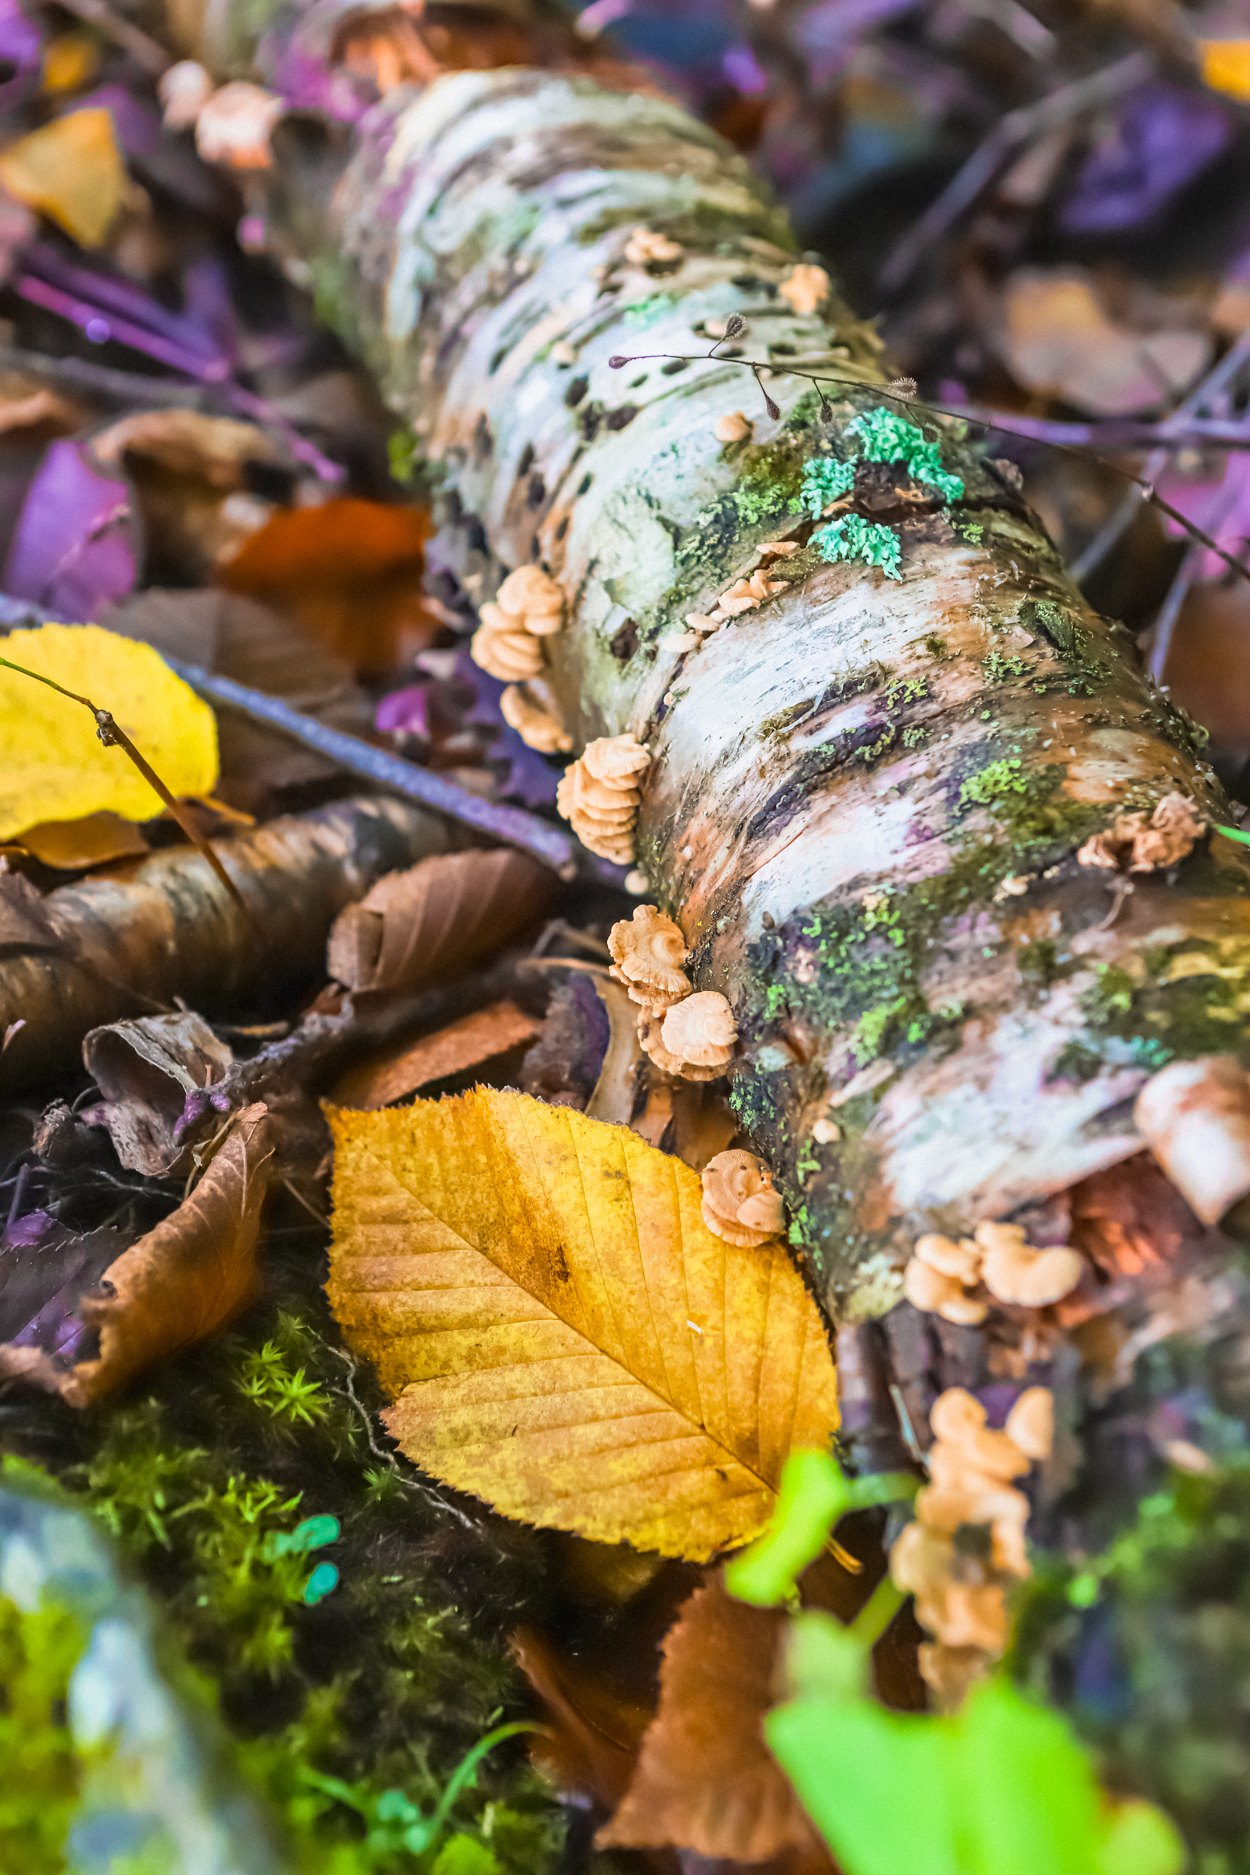 Moss and lichen covered birch branch sitting on ground surrounded by colorful leaves